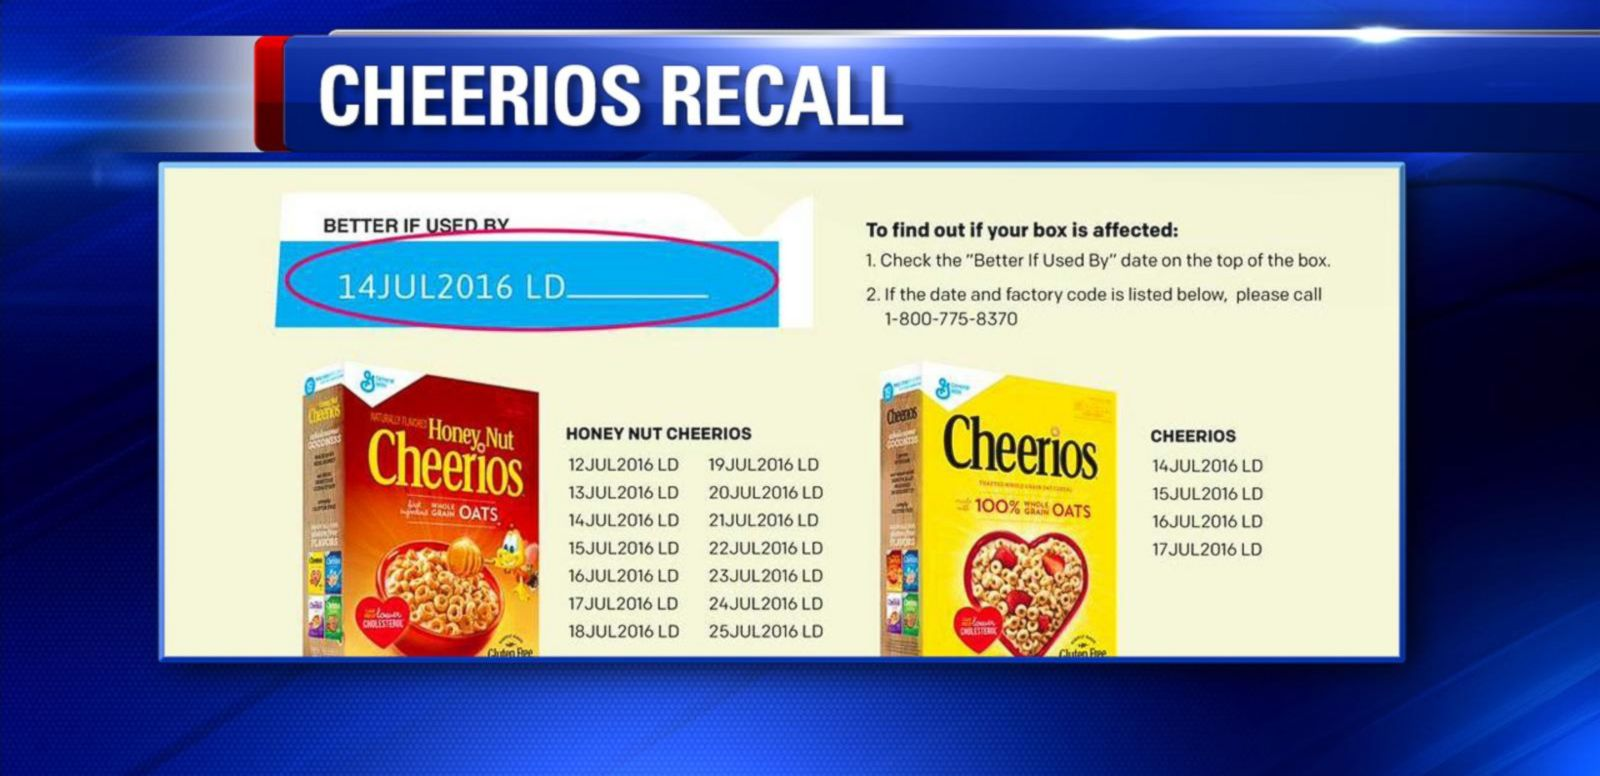 VIDEO: The company says it is voluntarily recalling boxes of Cheerios and Honey Nut Cheerios boxes labeled gluten-free because they may contain wheat.